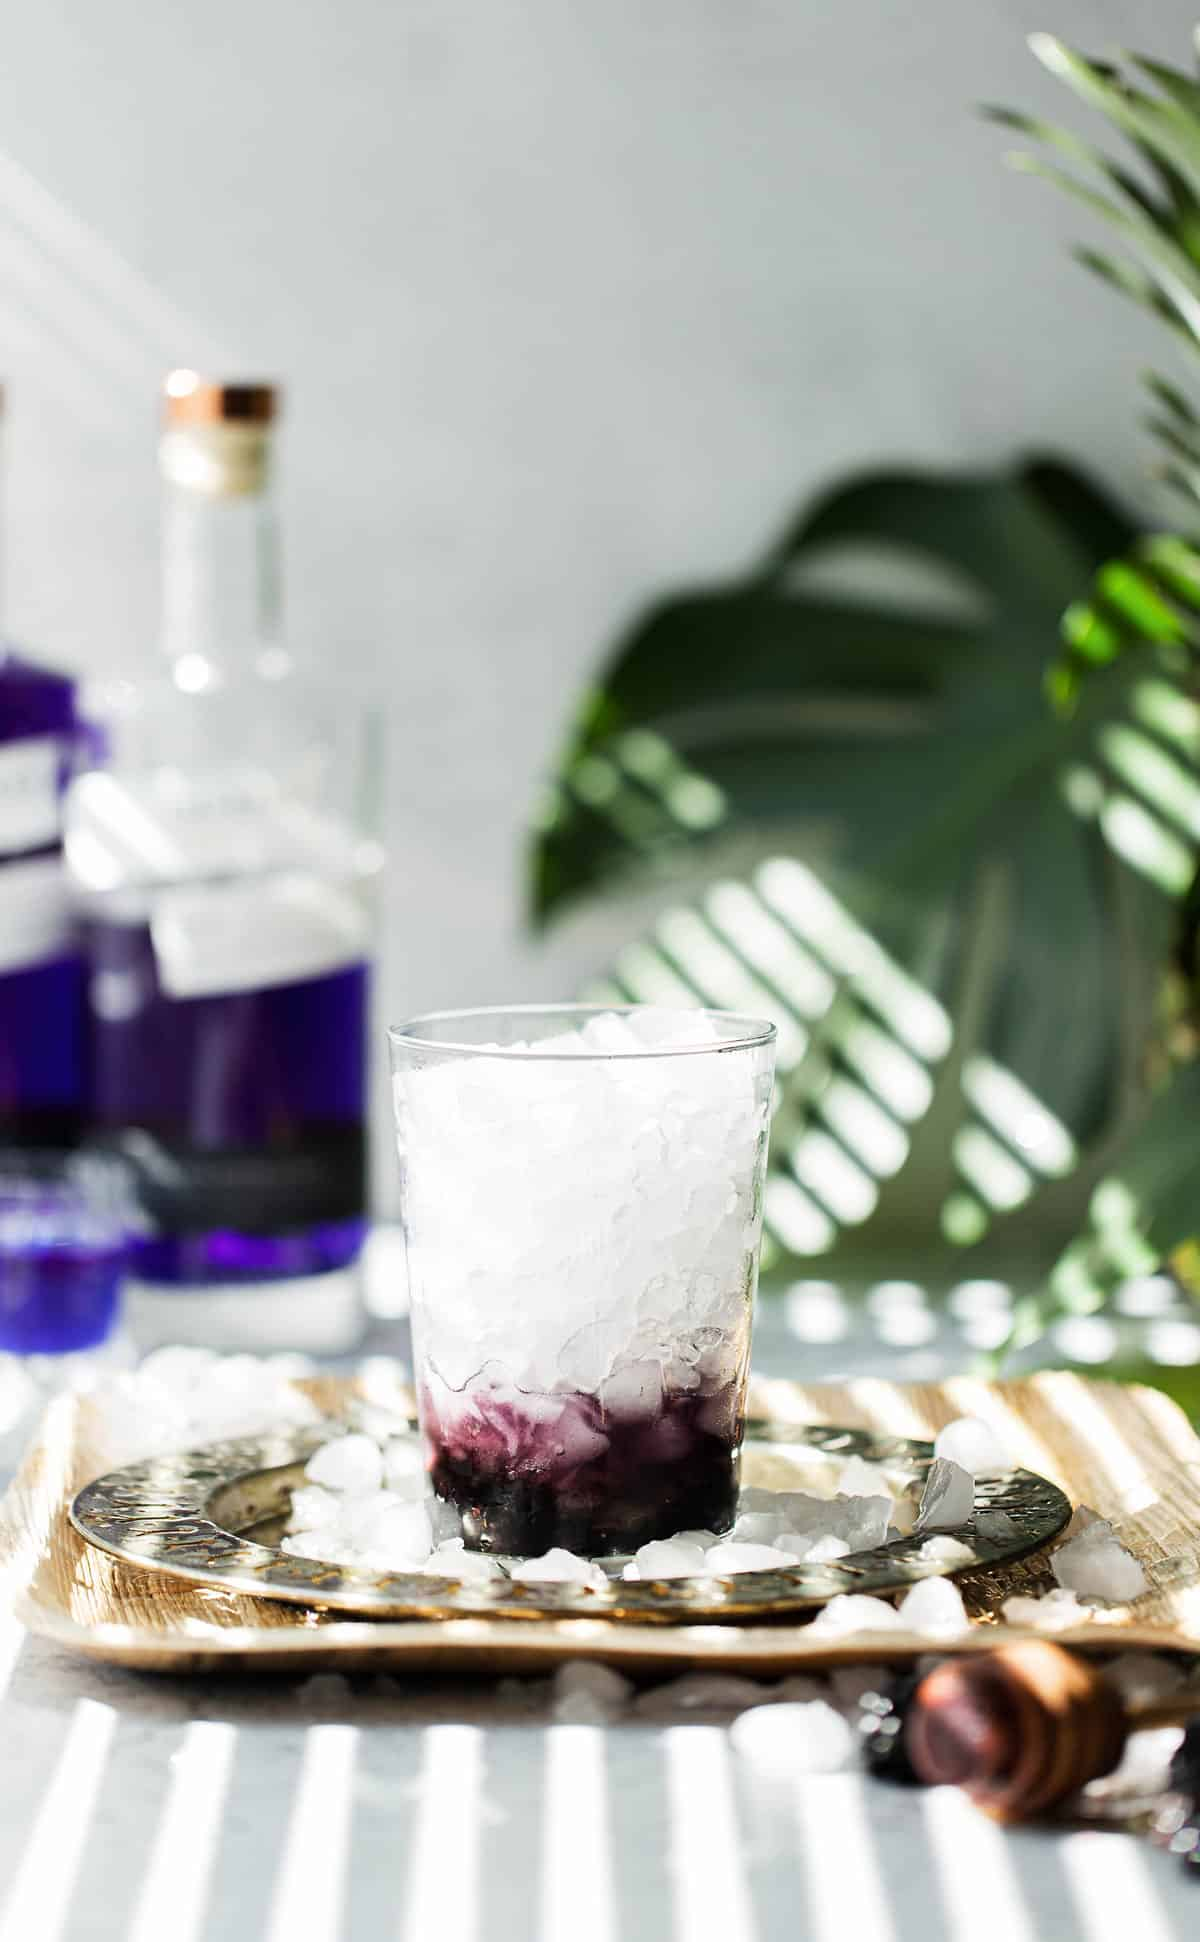 Muddled blackberries and honey in a glass with crushed ice